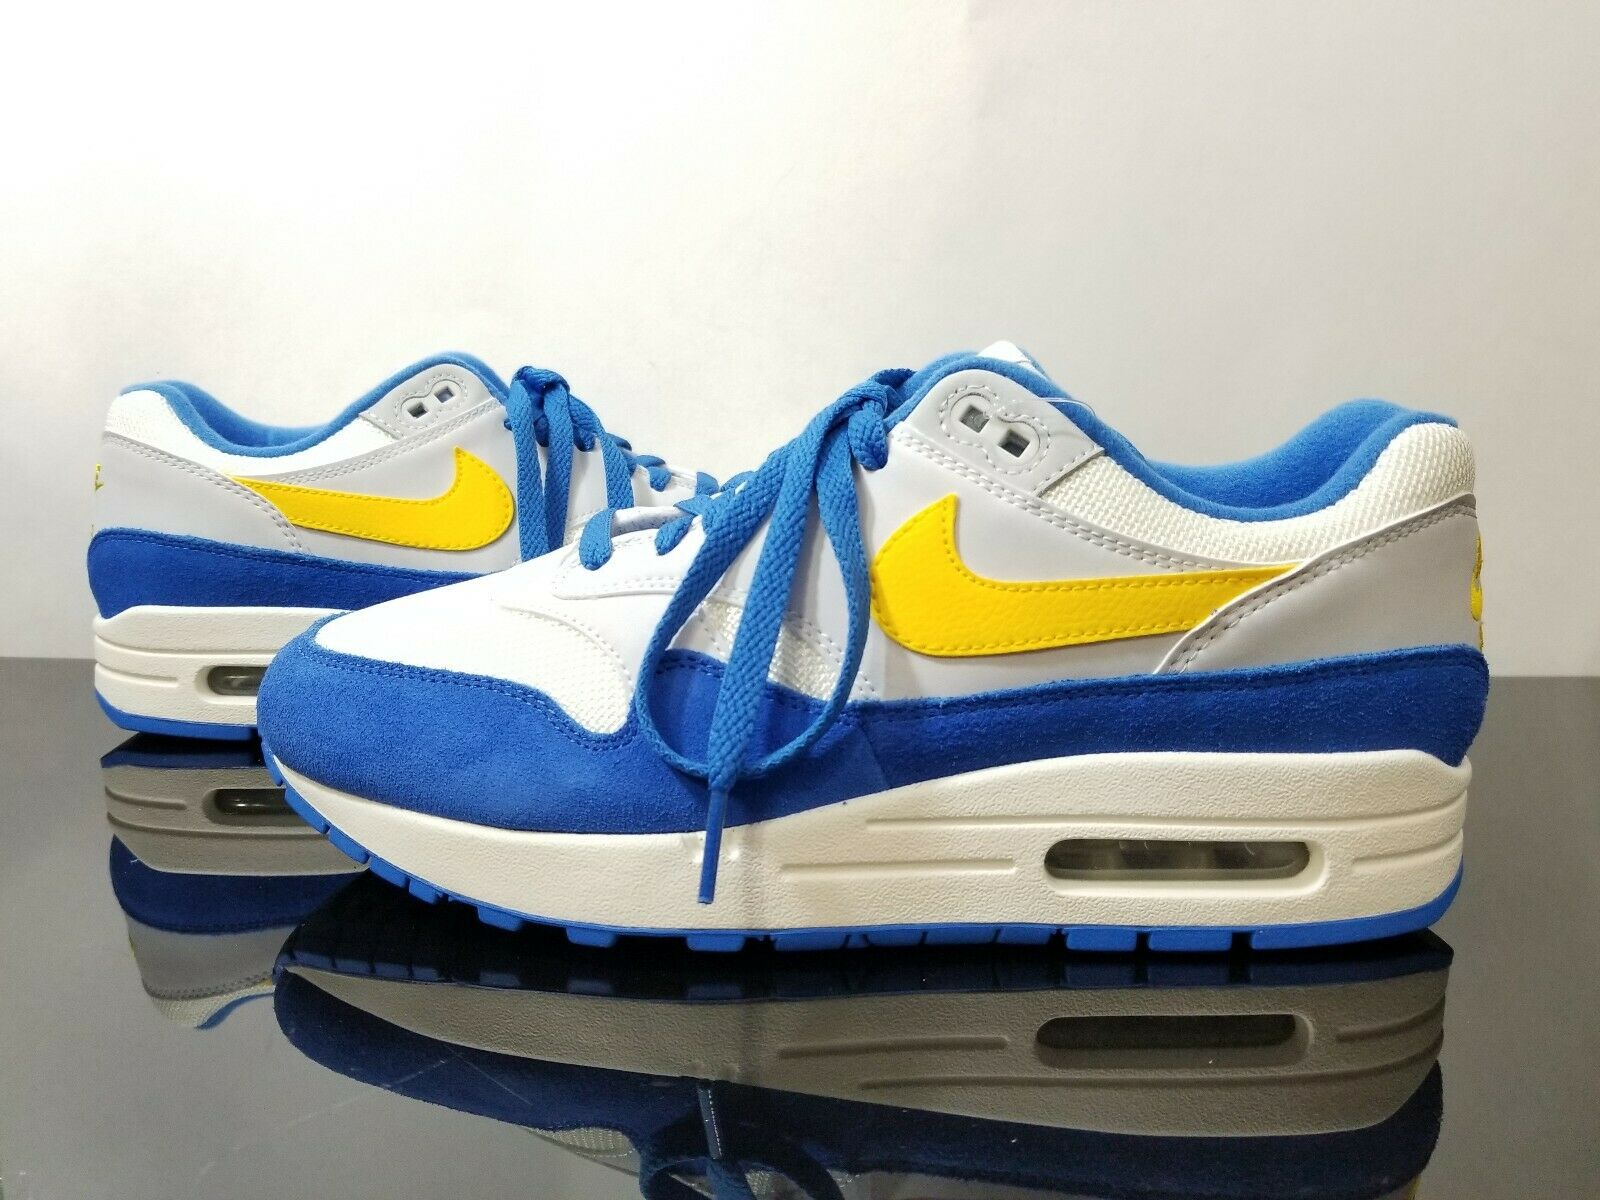 Details about AH8145 108 MEN'S NIKE AIR MAX 1 SIGNAL BLUE SailAmarillo Pure NEW! Size 7